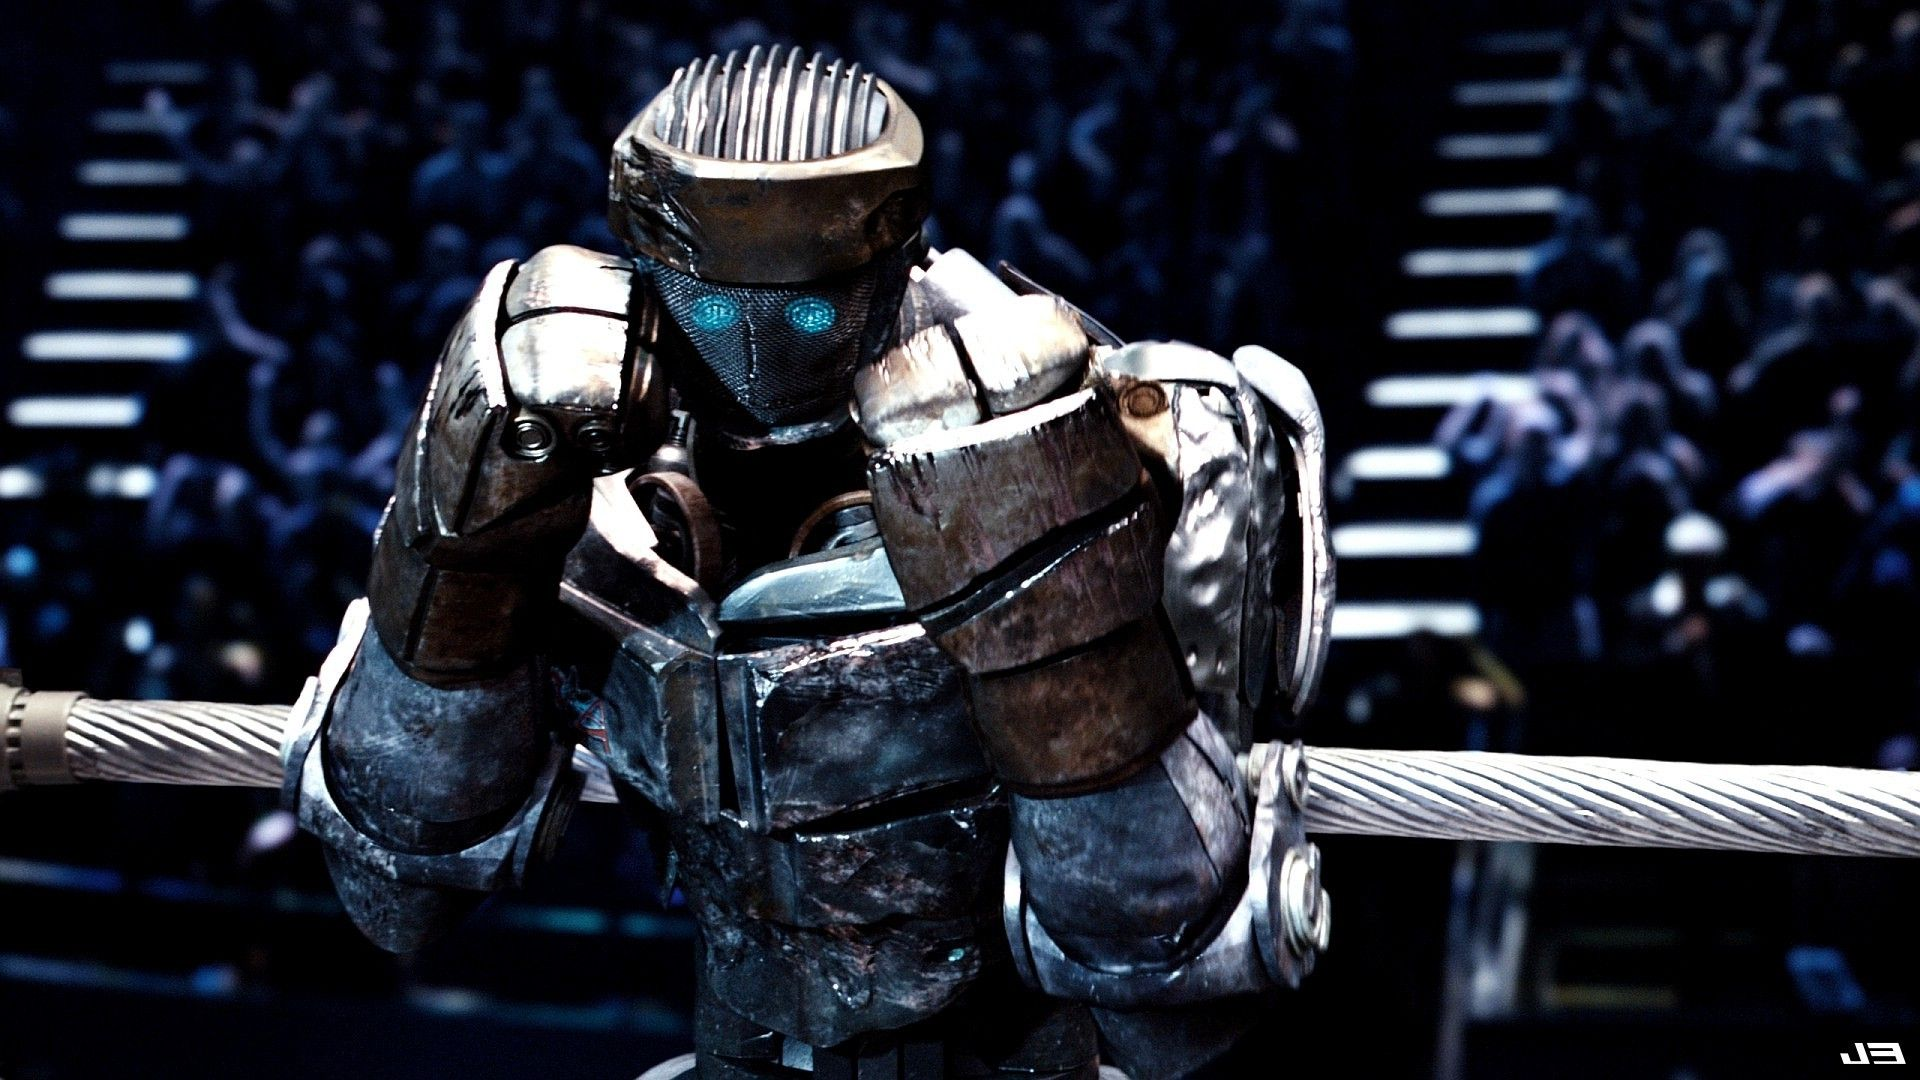 real steel wallpaper  Real Steel Wallpaper | Epic Car Wallpapers | Pinterest | Real steel ...